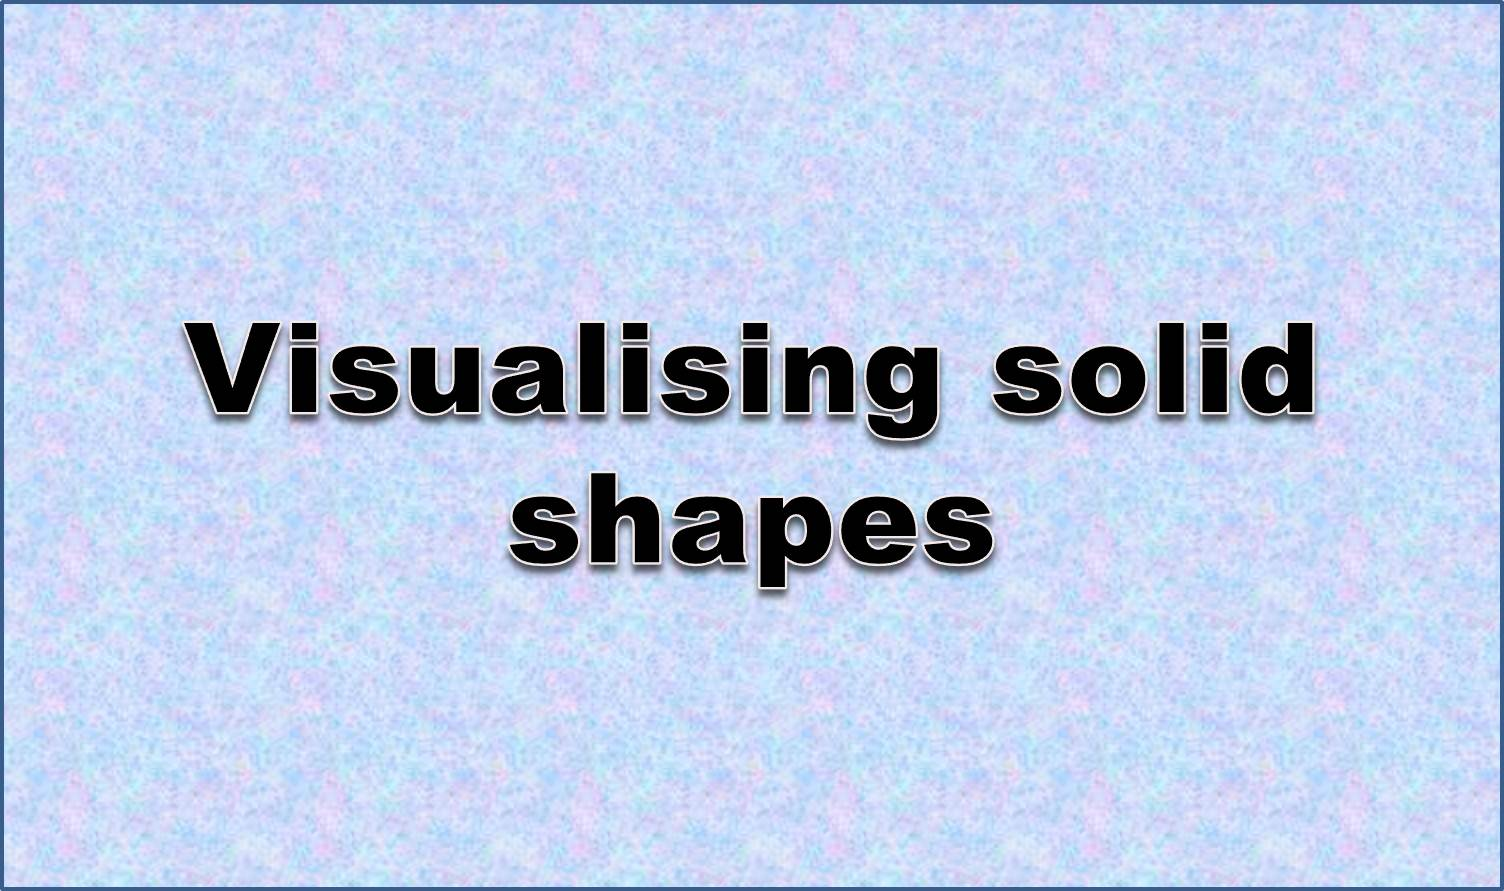 http://study.aisectonline.com/images/Solving a scale drawing word problem.jpg